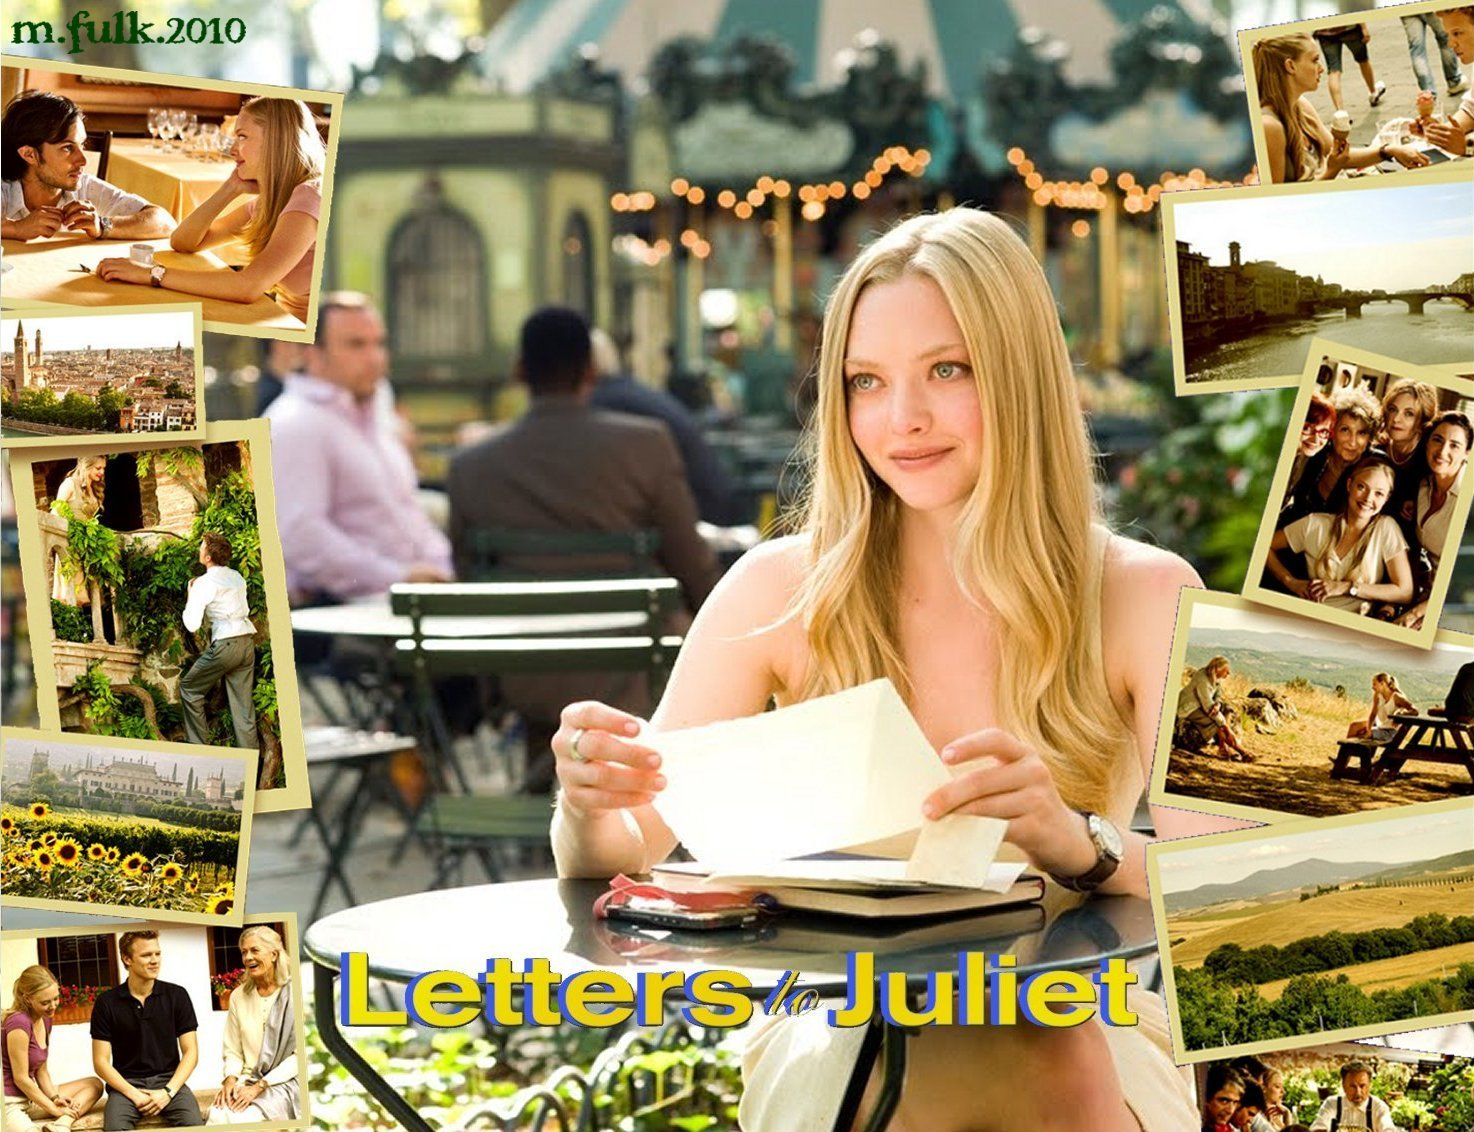 Letters To Juliet images Letters to Juliet 2010 HD wallpaper and